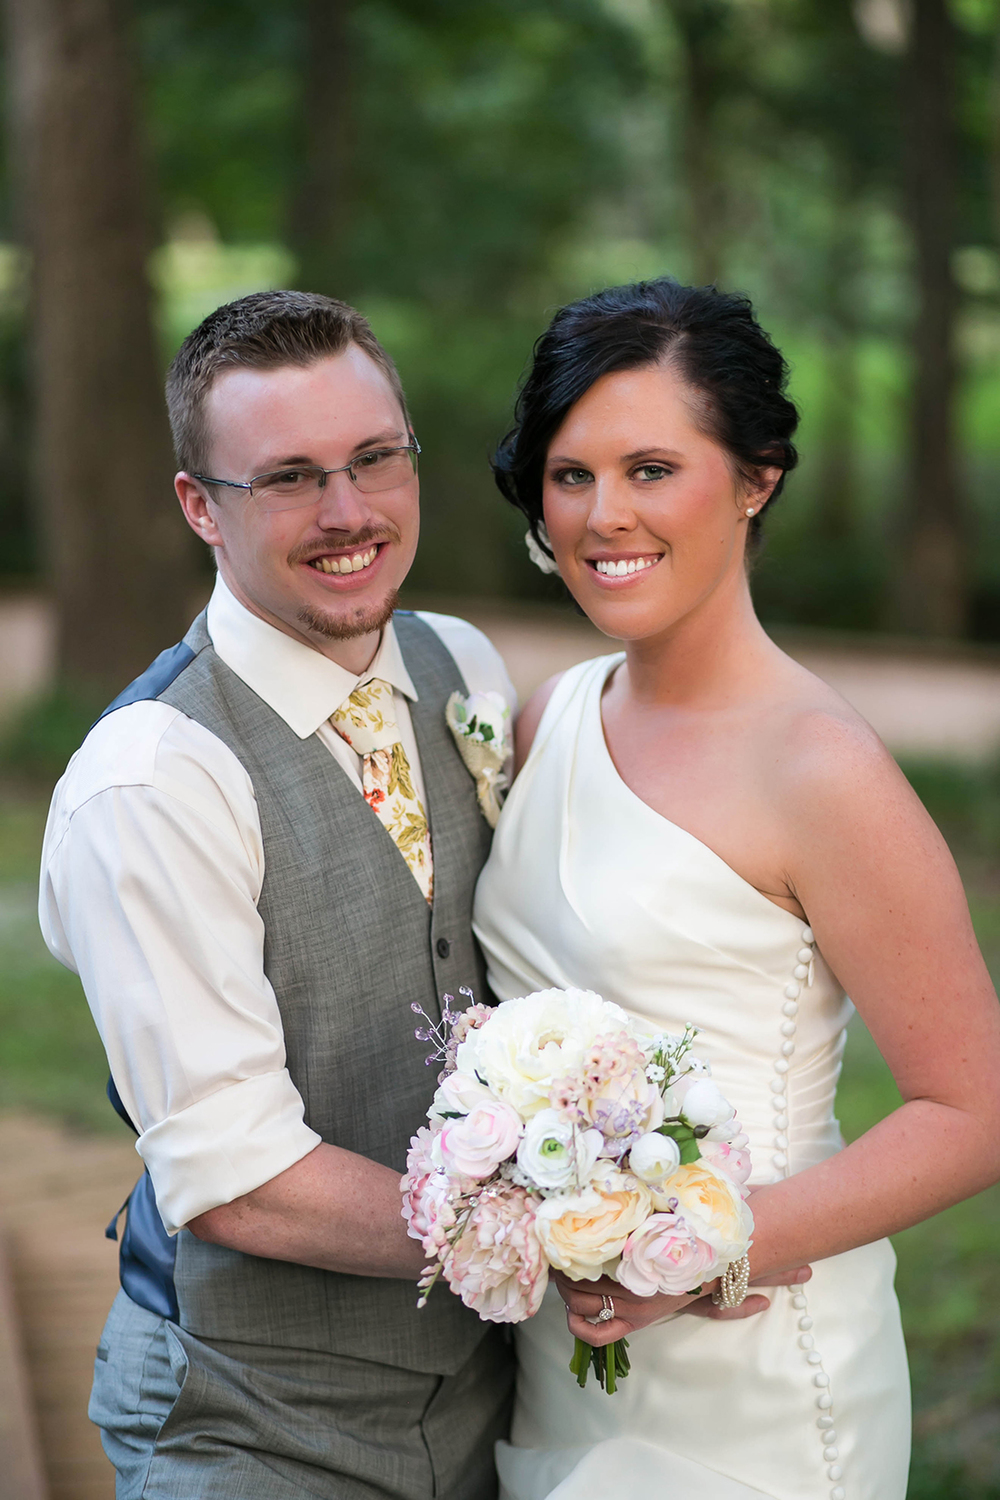 adam-szarmack-middleburg-wedding-photographer-IMG_1643.jpg